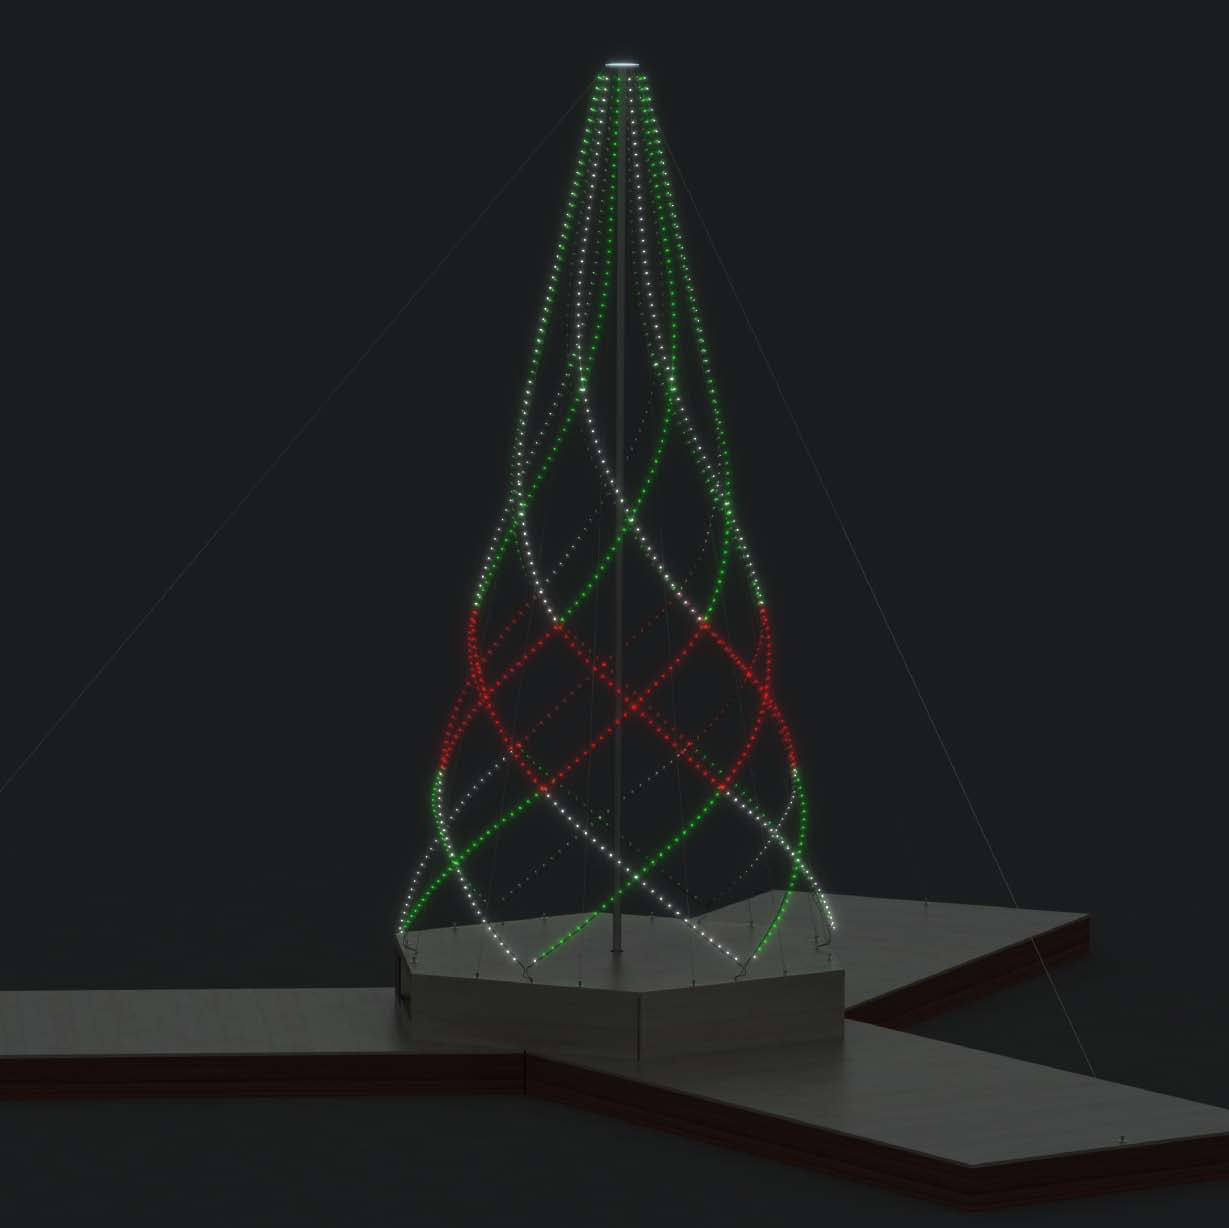 Sketch of LEDs on ther tree